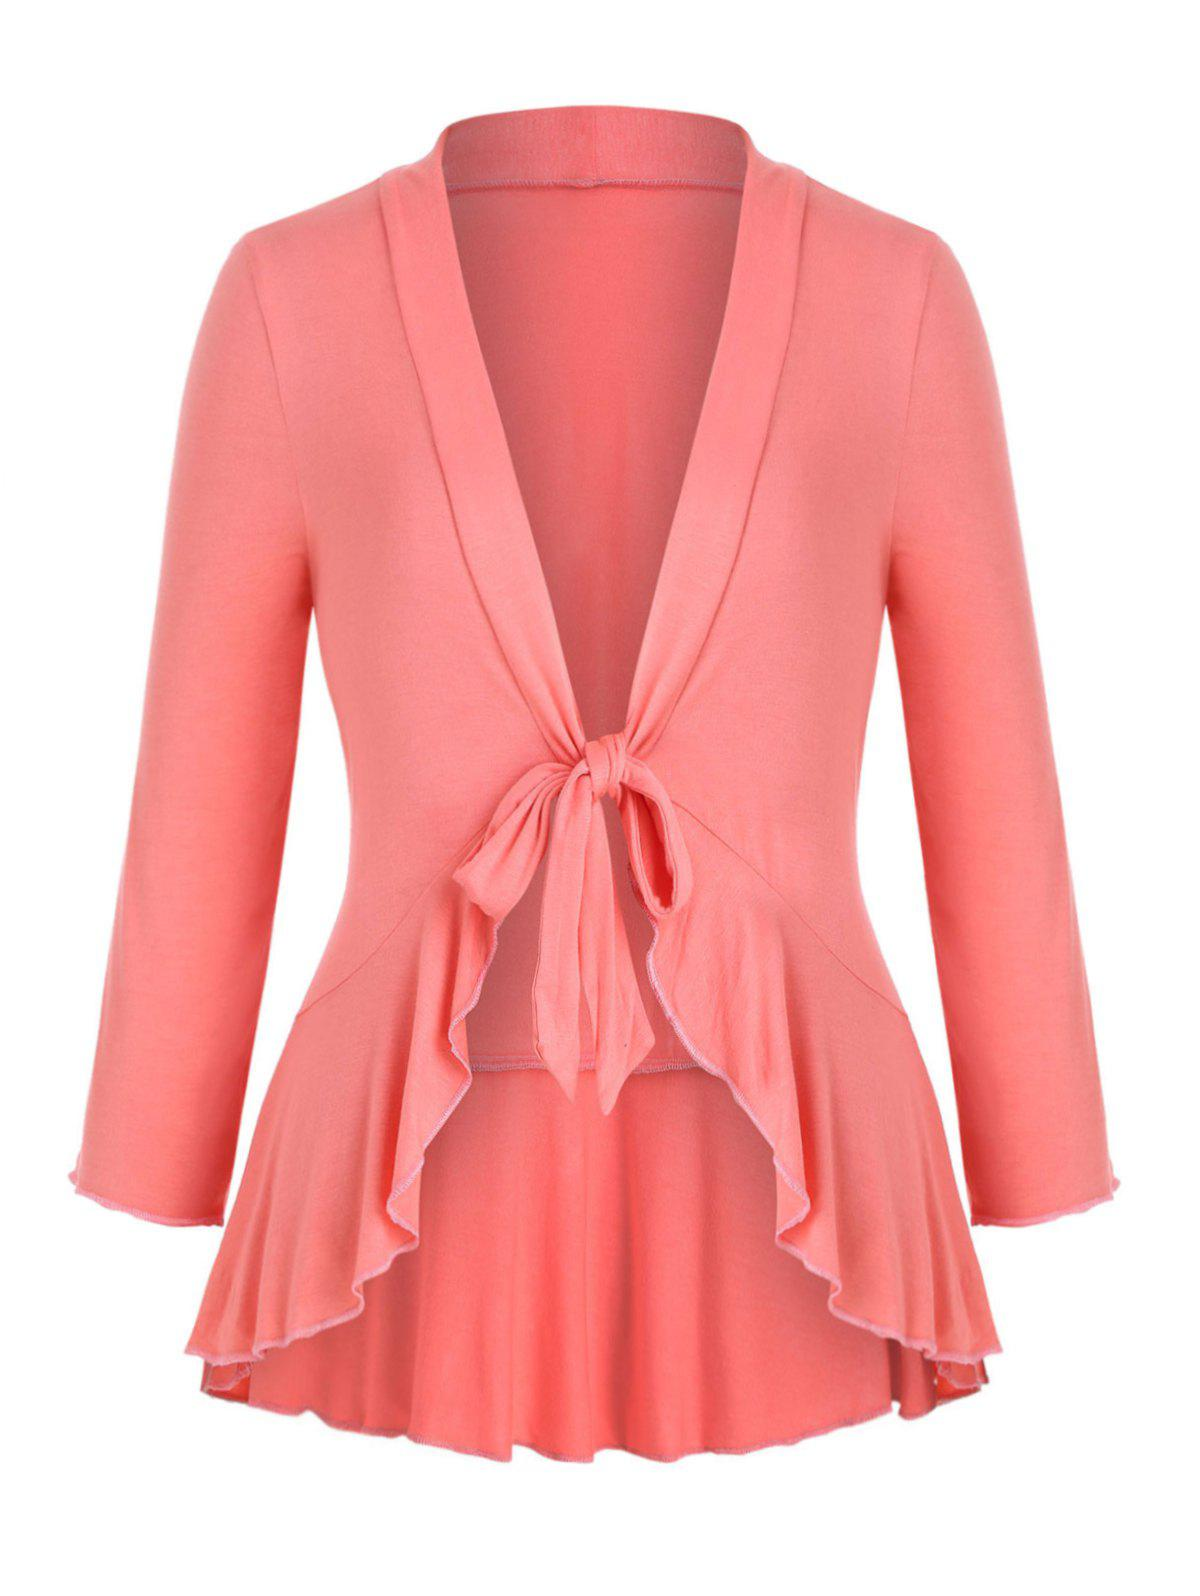 Knotted Solid Flounced Hem Plus Size Top - LIGHT PINK 2X